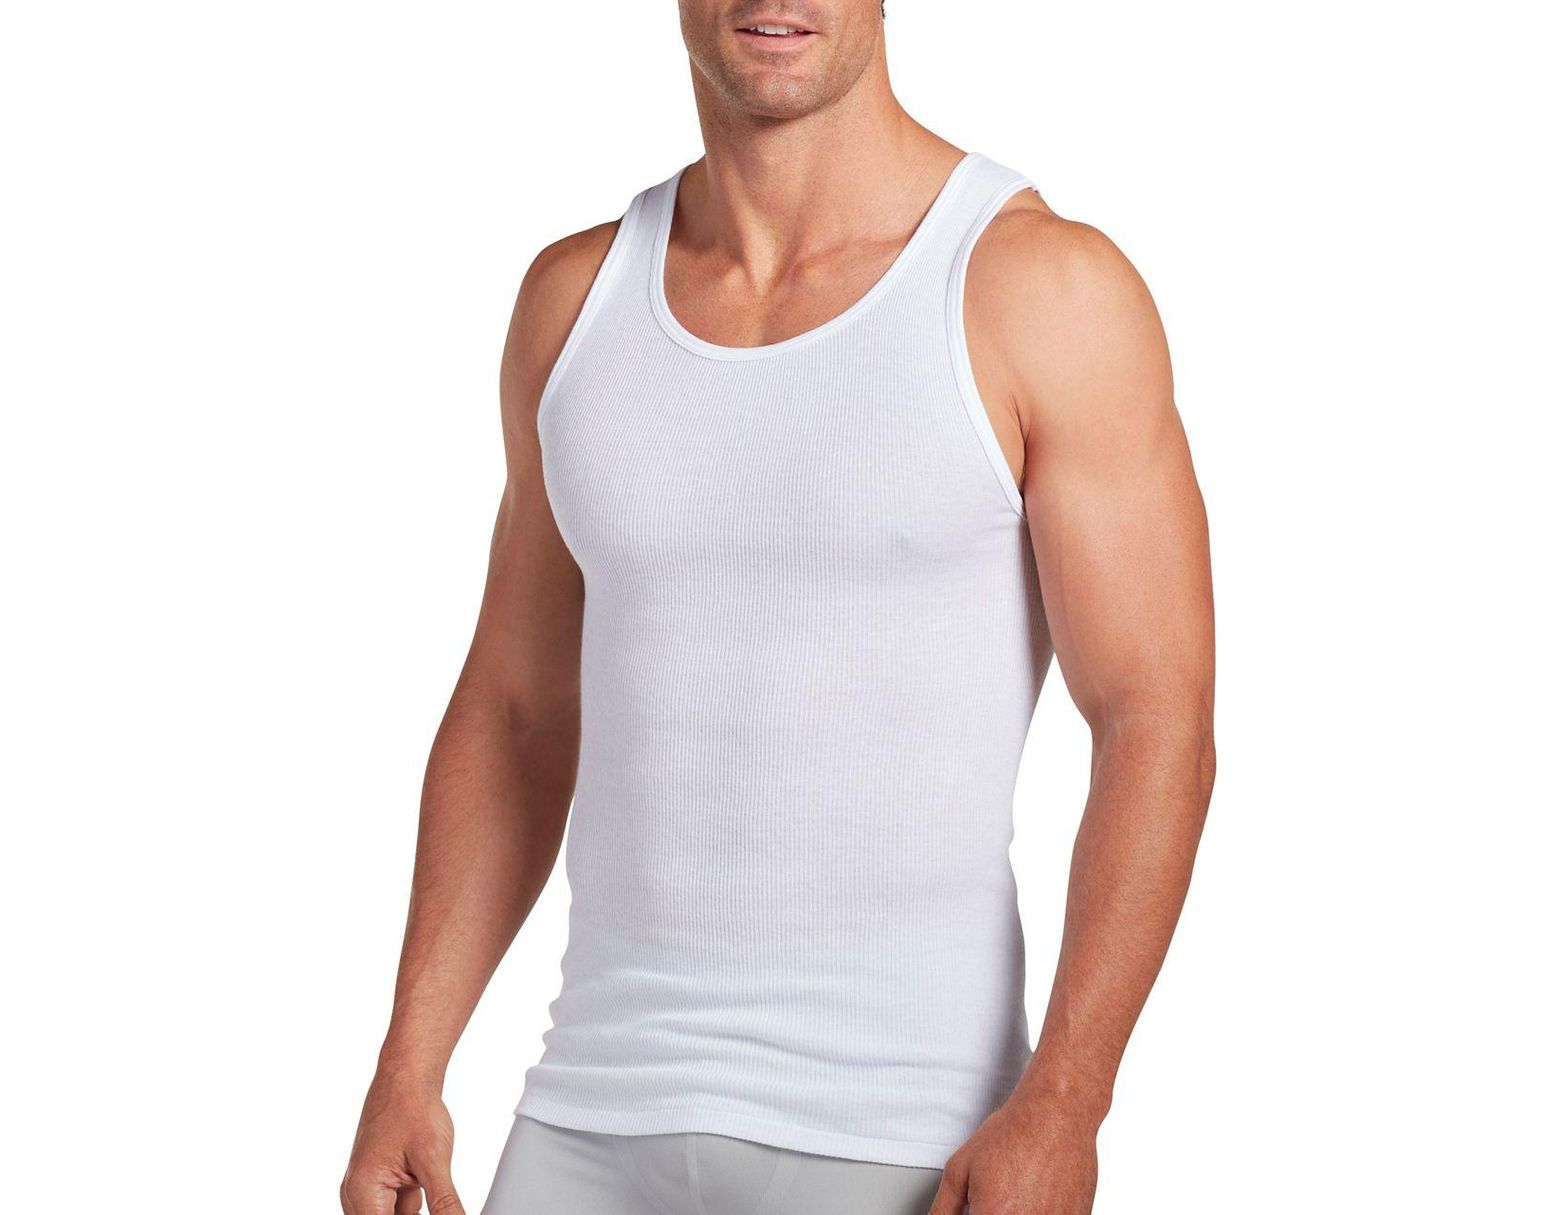 ae793dcf Jockey Big Man Cotton Ribbed Tank Top 2-pack in White for Men - Lyst